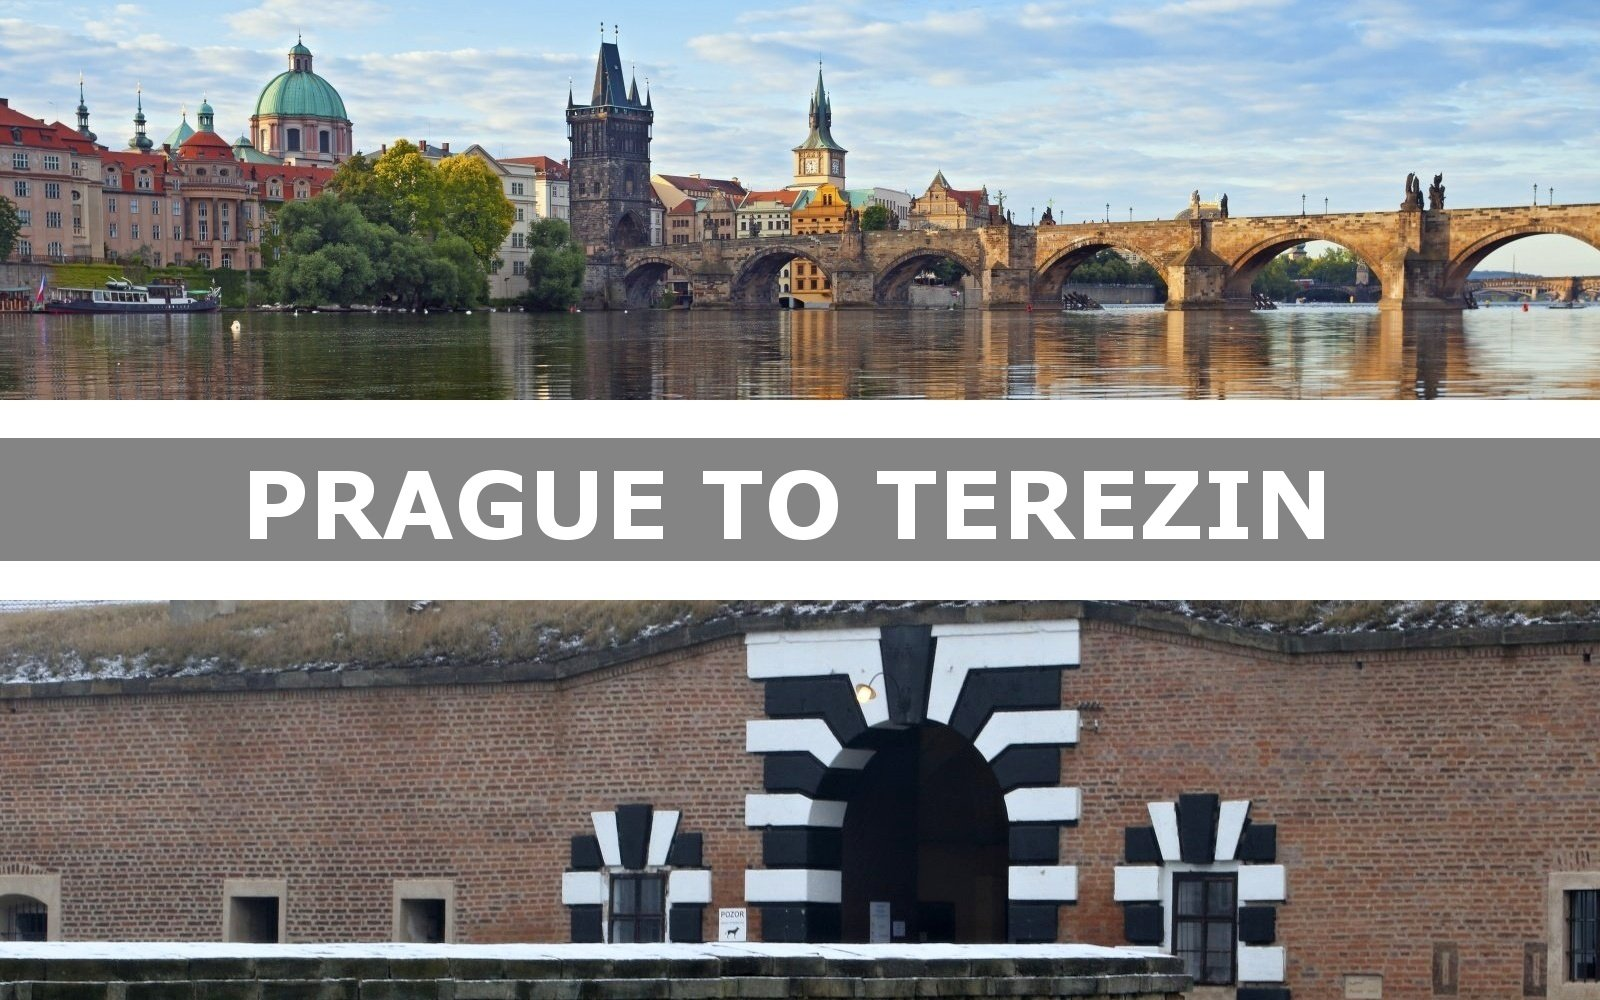 Transportation from Prague to Terezin